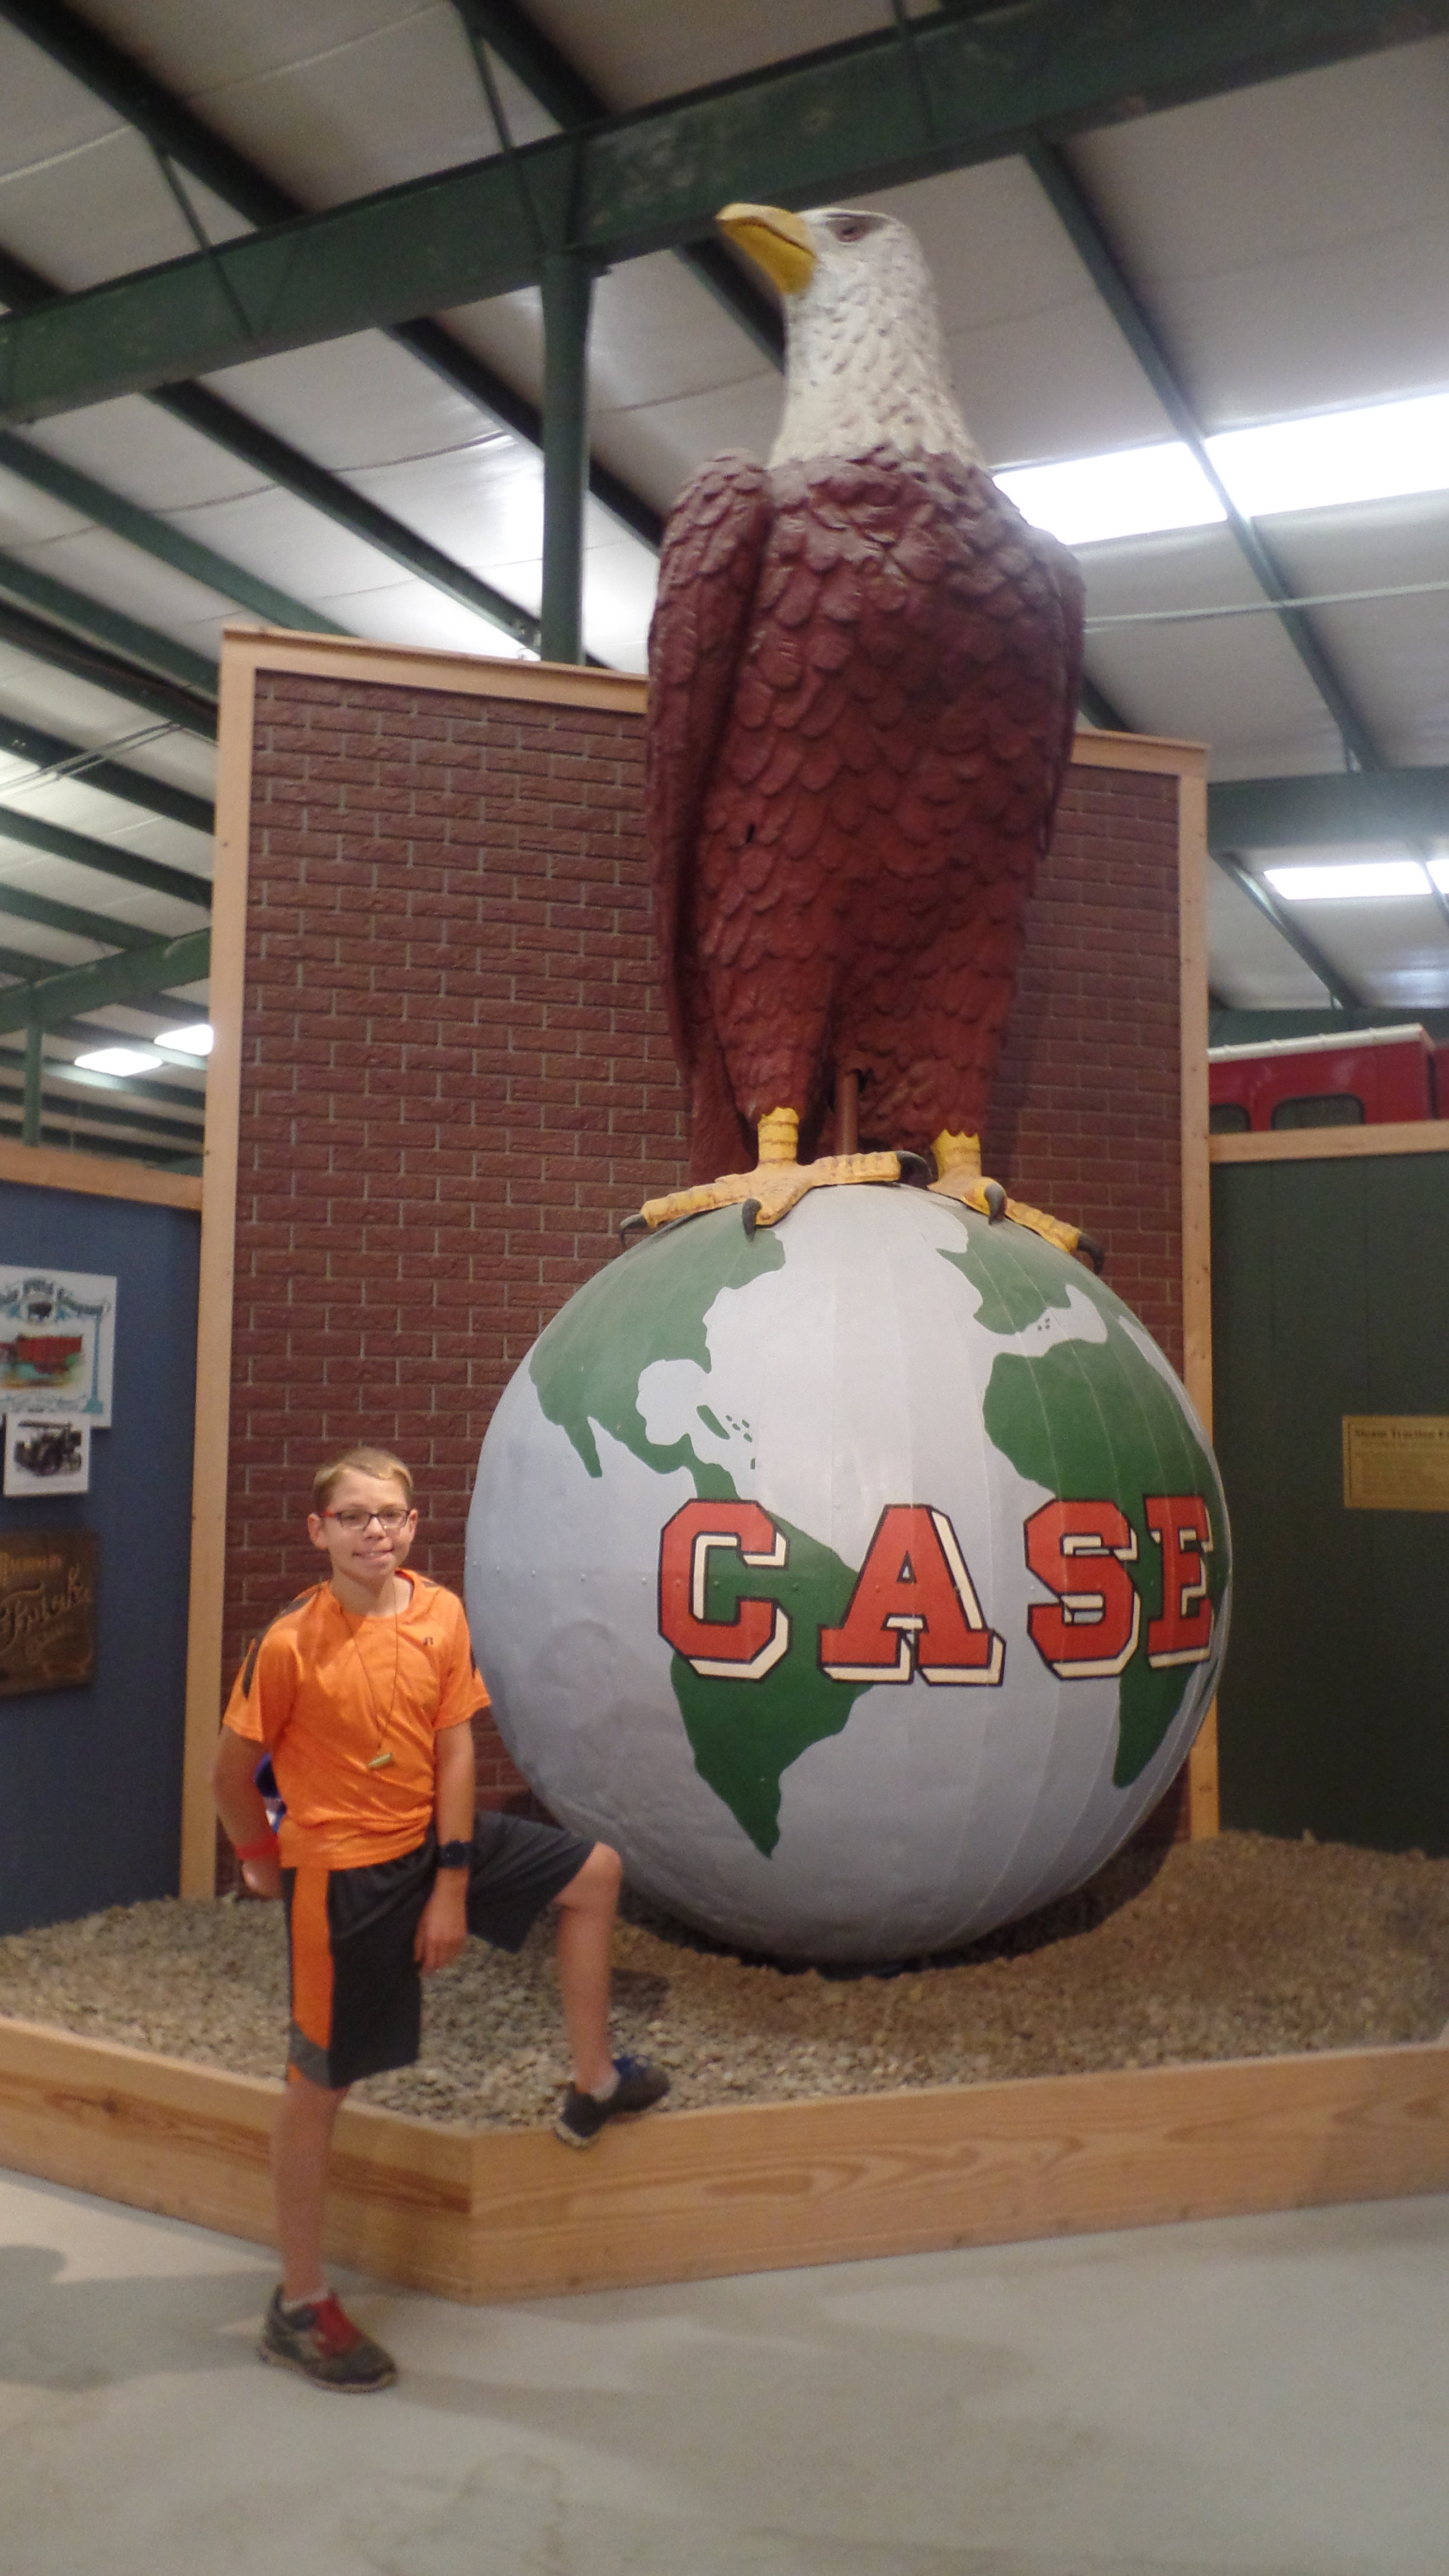 A giant statue of the case symbol of the Case tractor, large eagle standing on a globe